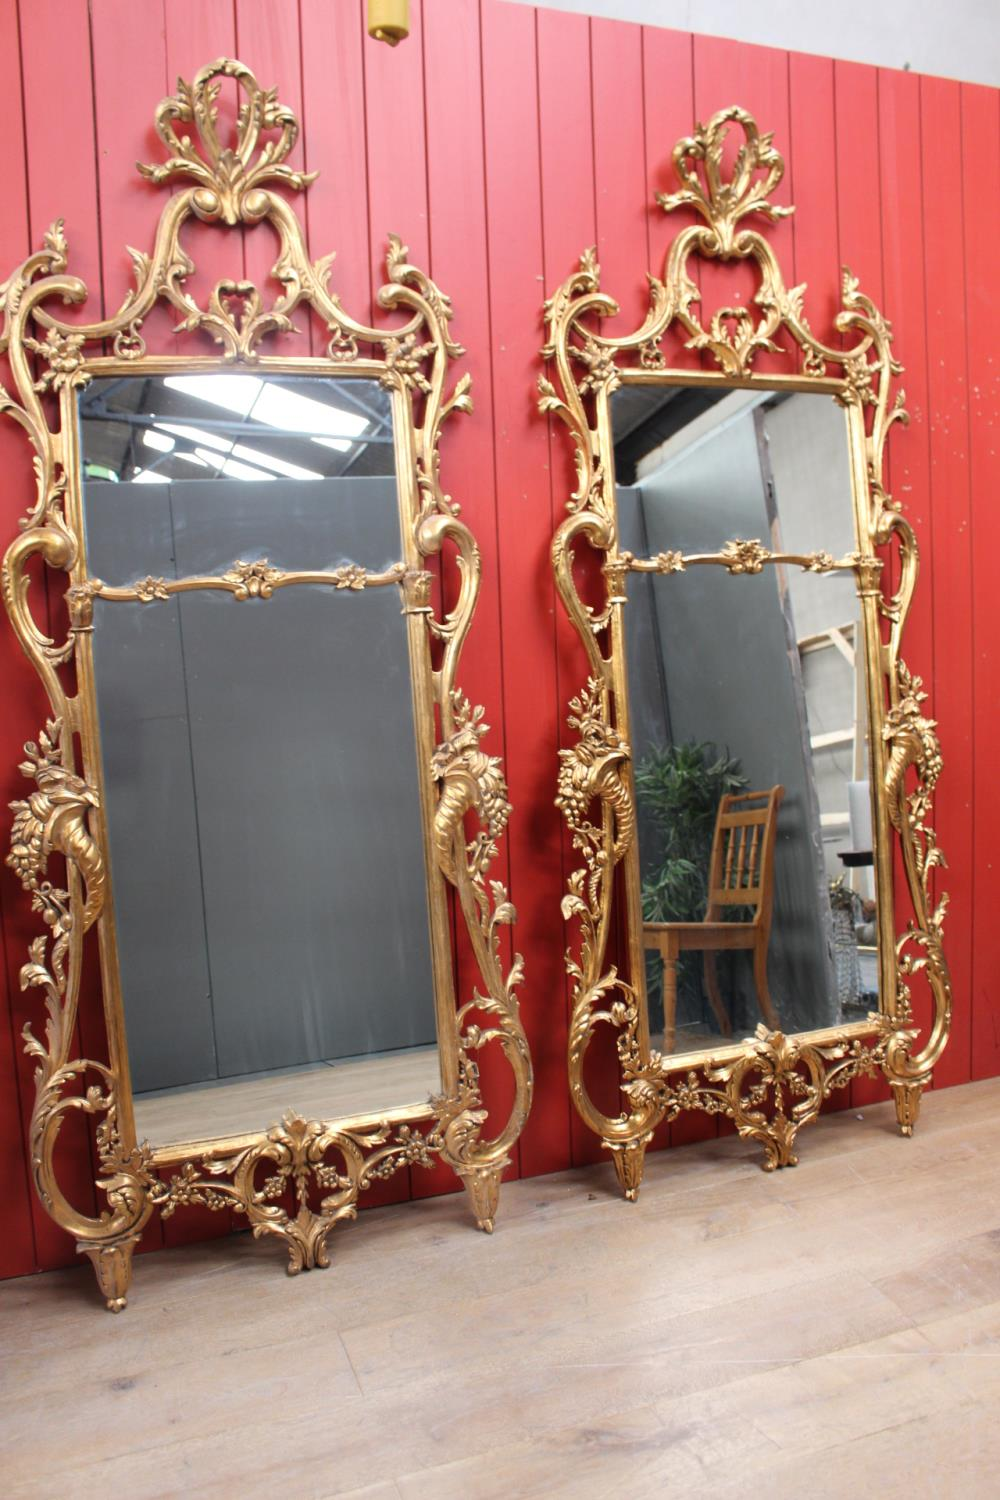 Decorative giltwood wall mirror - Image 2 of 4